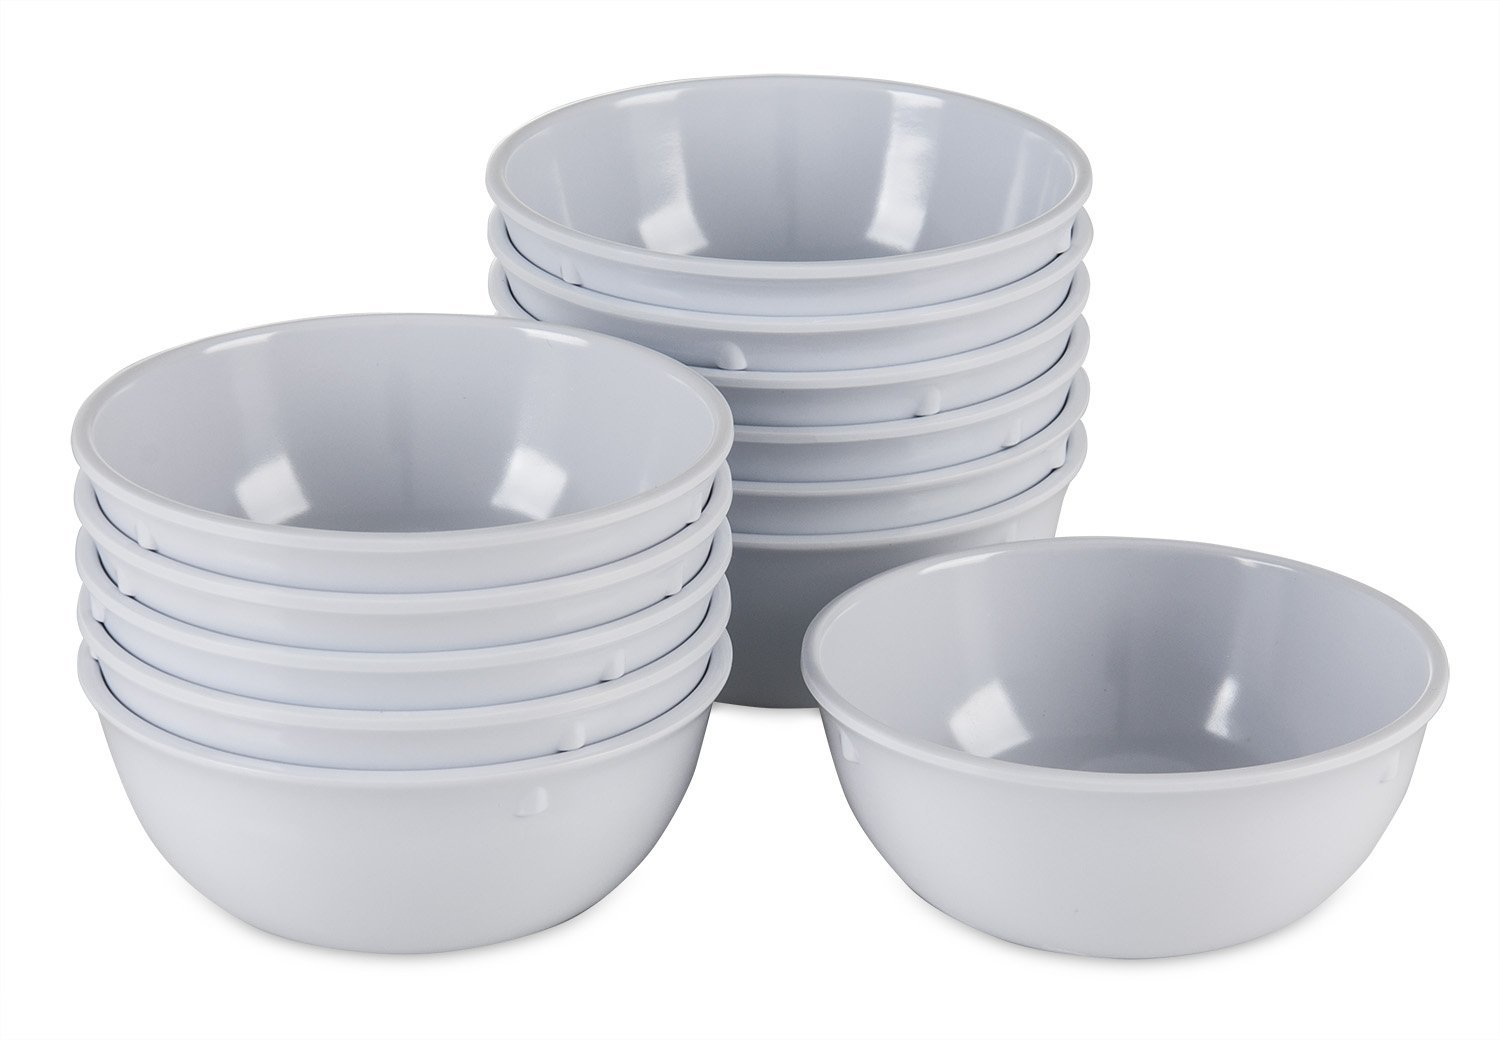 New Melamine Bowl Set 12 Pack Kitchenware Set 15 Oz. SaveEnlarge · Dinnerware Plastic Dinnerware Sets Microwave Safe  sc 1 st  Castrophotos & Dishwasher Safe Dinnerware Sets - Castrophotos